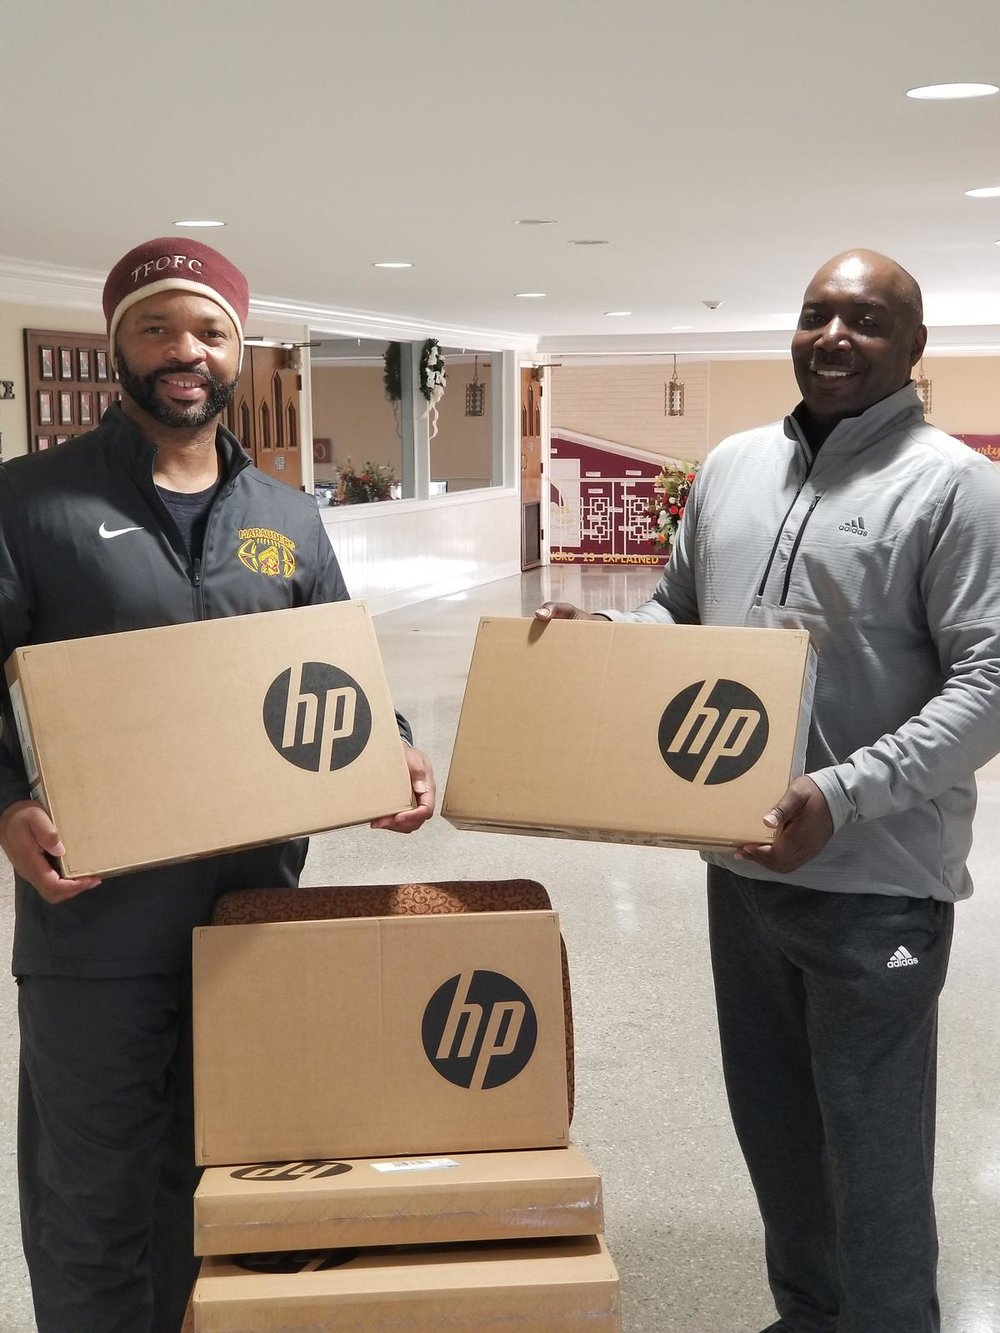 KJIF Vice President, Kerry Johnson, delivering computers to help with the Fellowship of Faith Workforce Development Program.